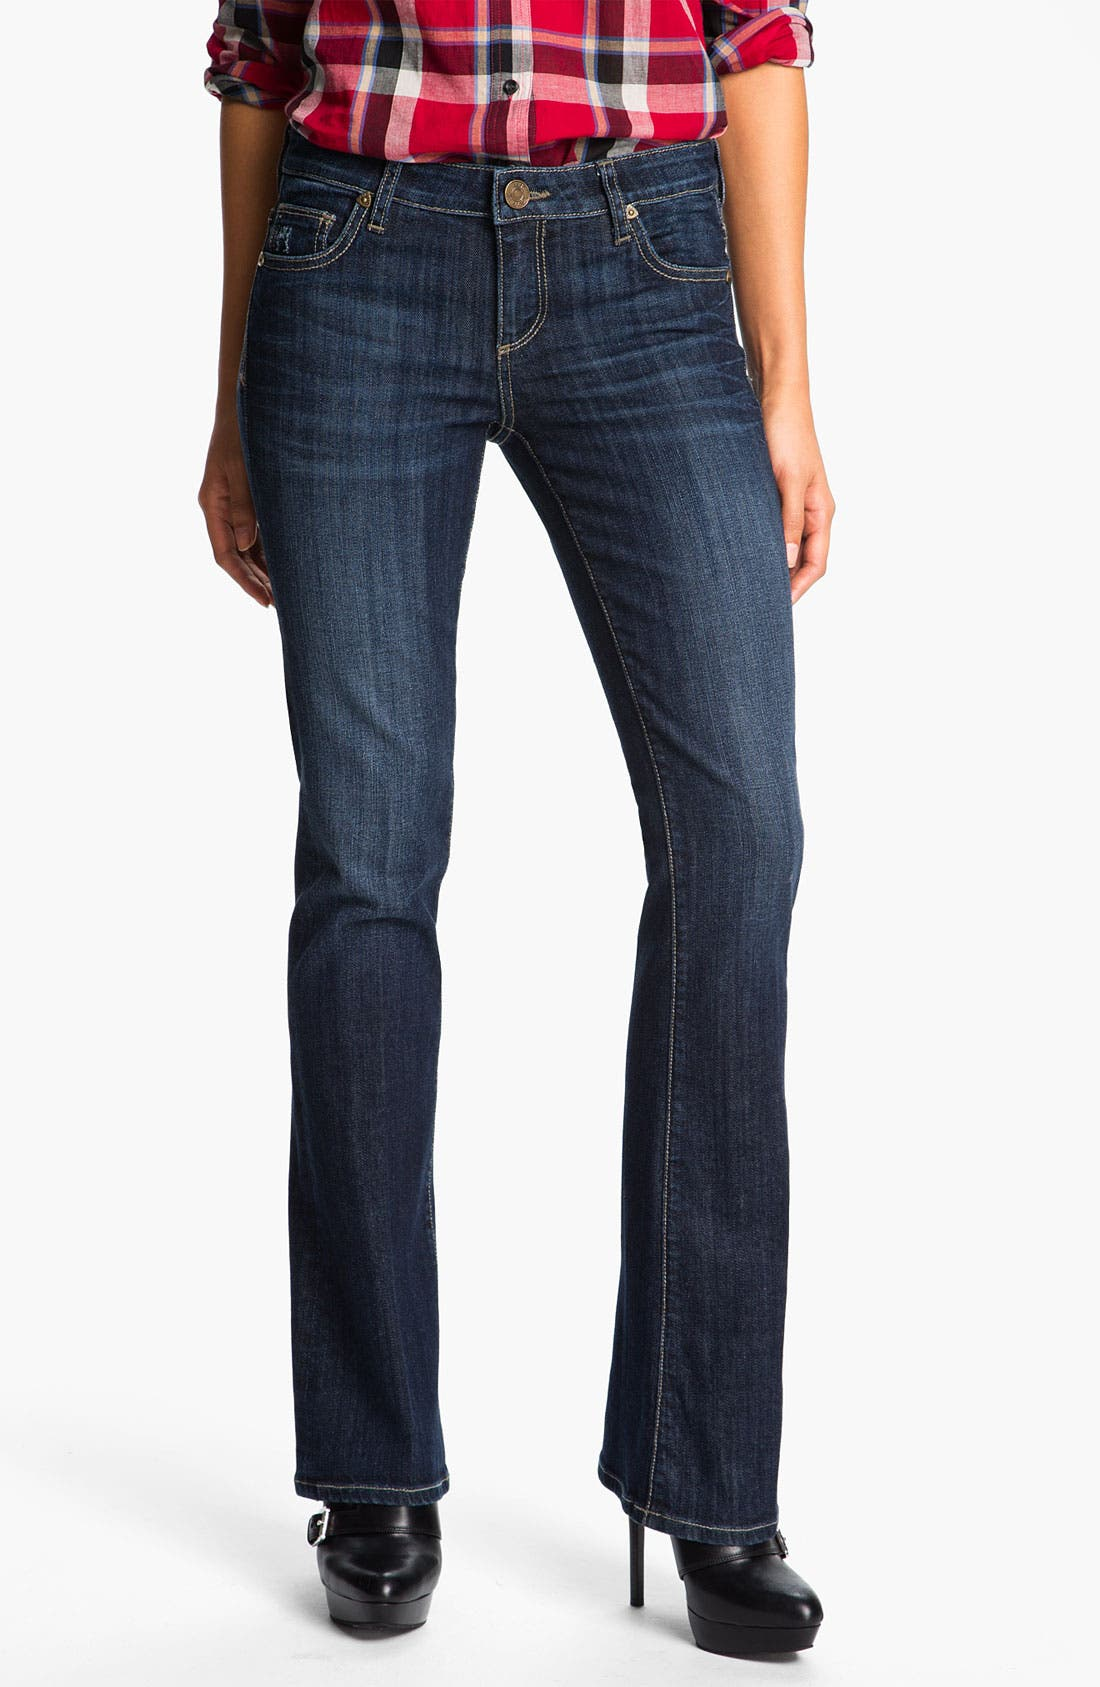 Alternate Image 1 Selected - KUT from the Kloth Baby Bootcut Jeans (Capture) (Online Only)